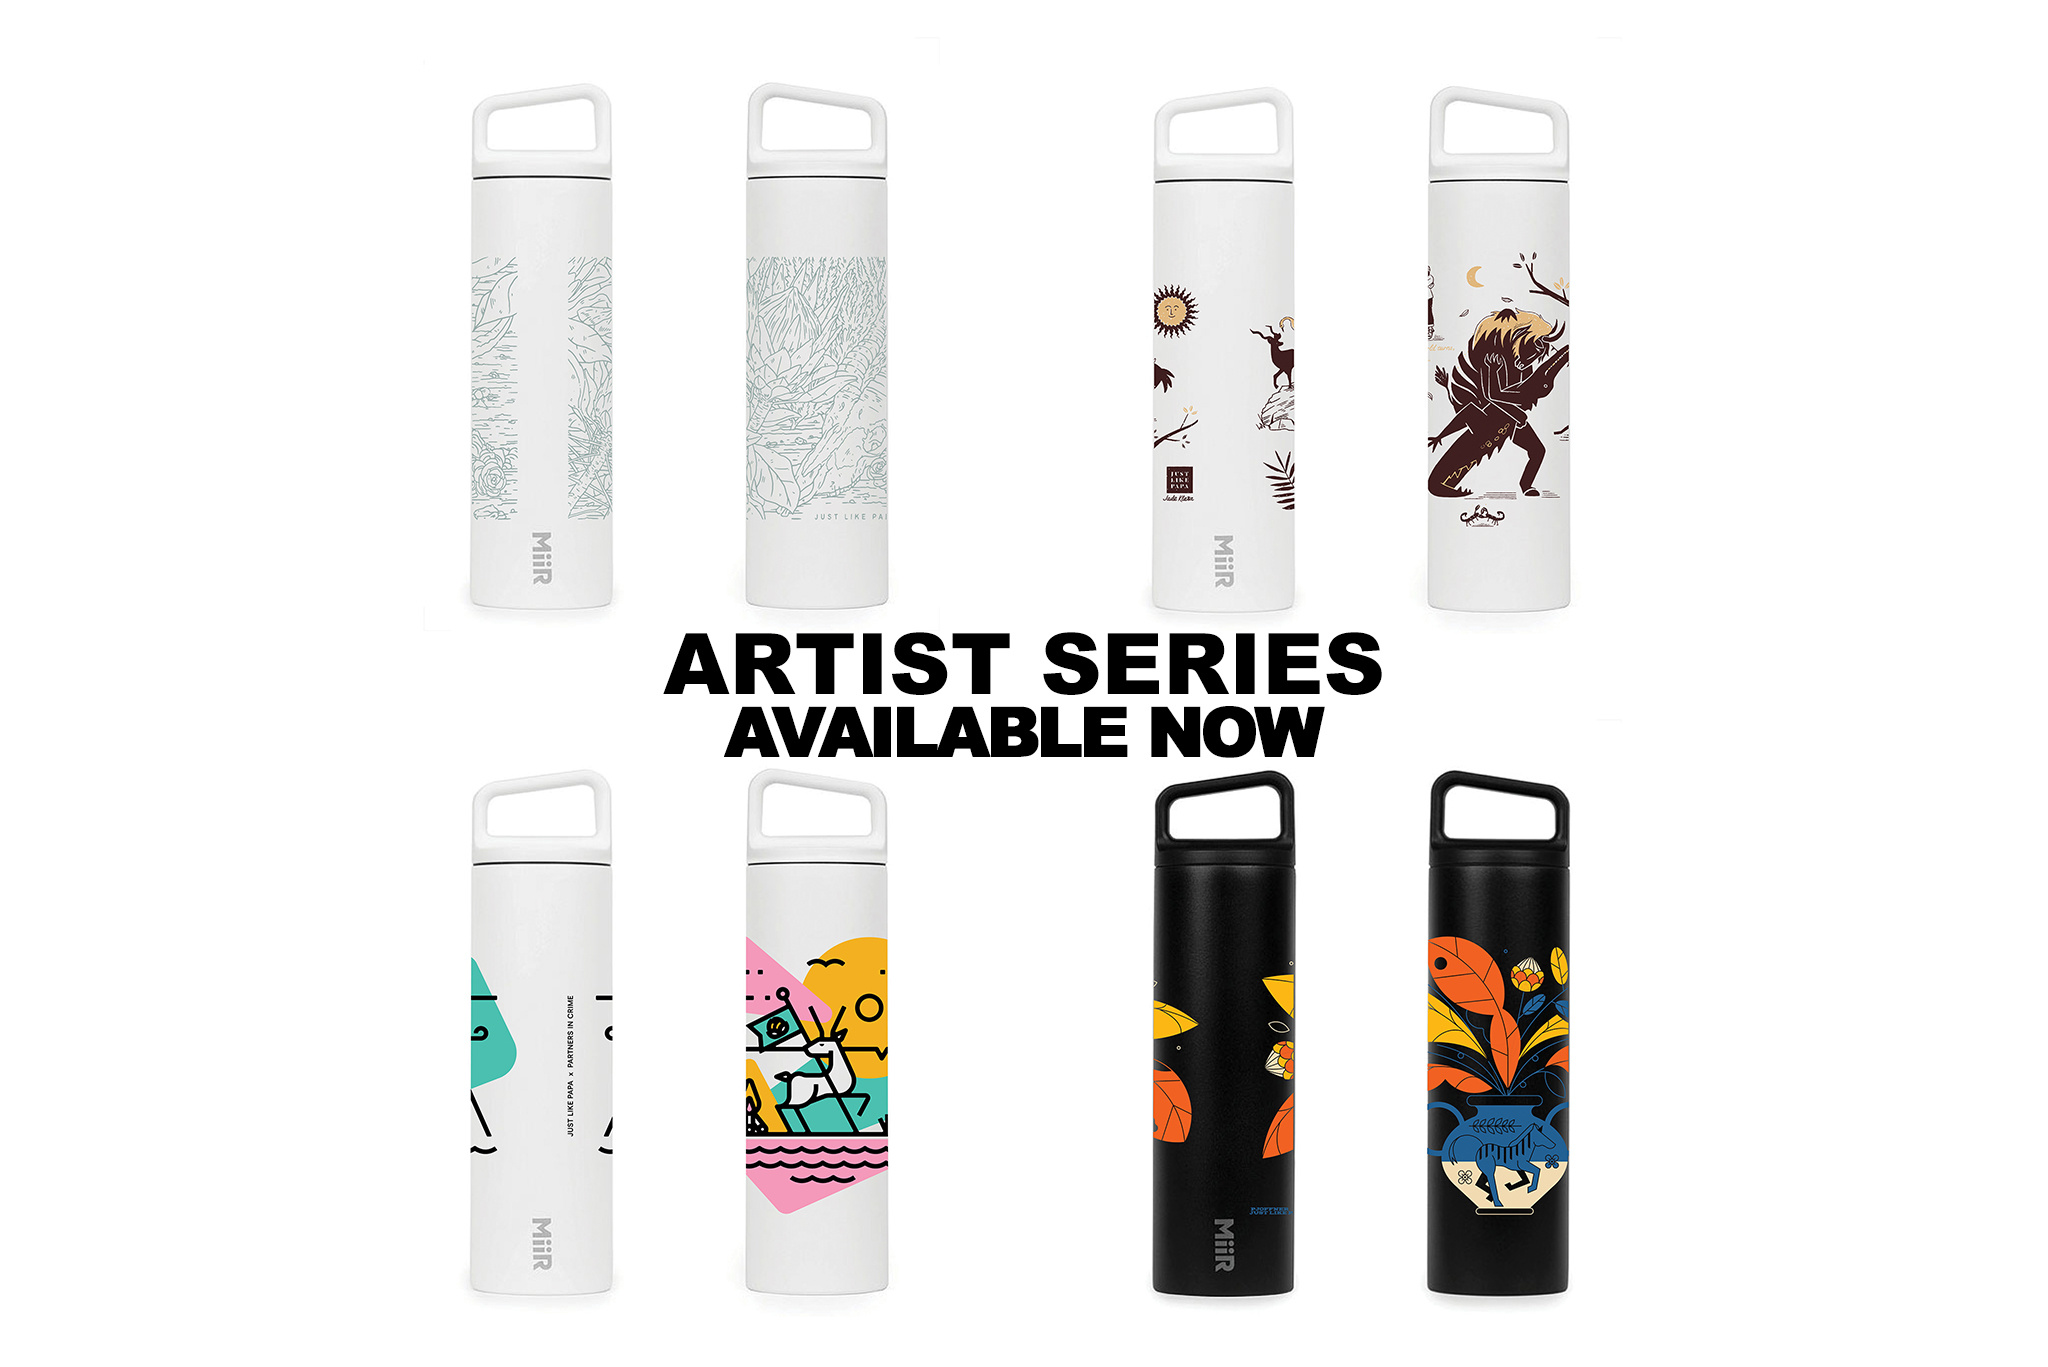 MiiR Artist Series: Available Now